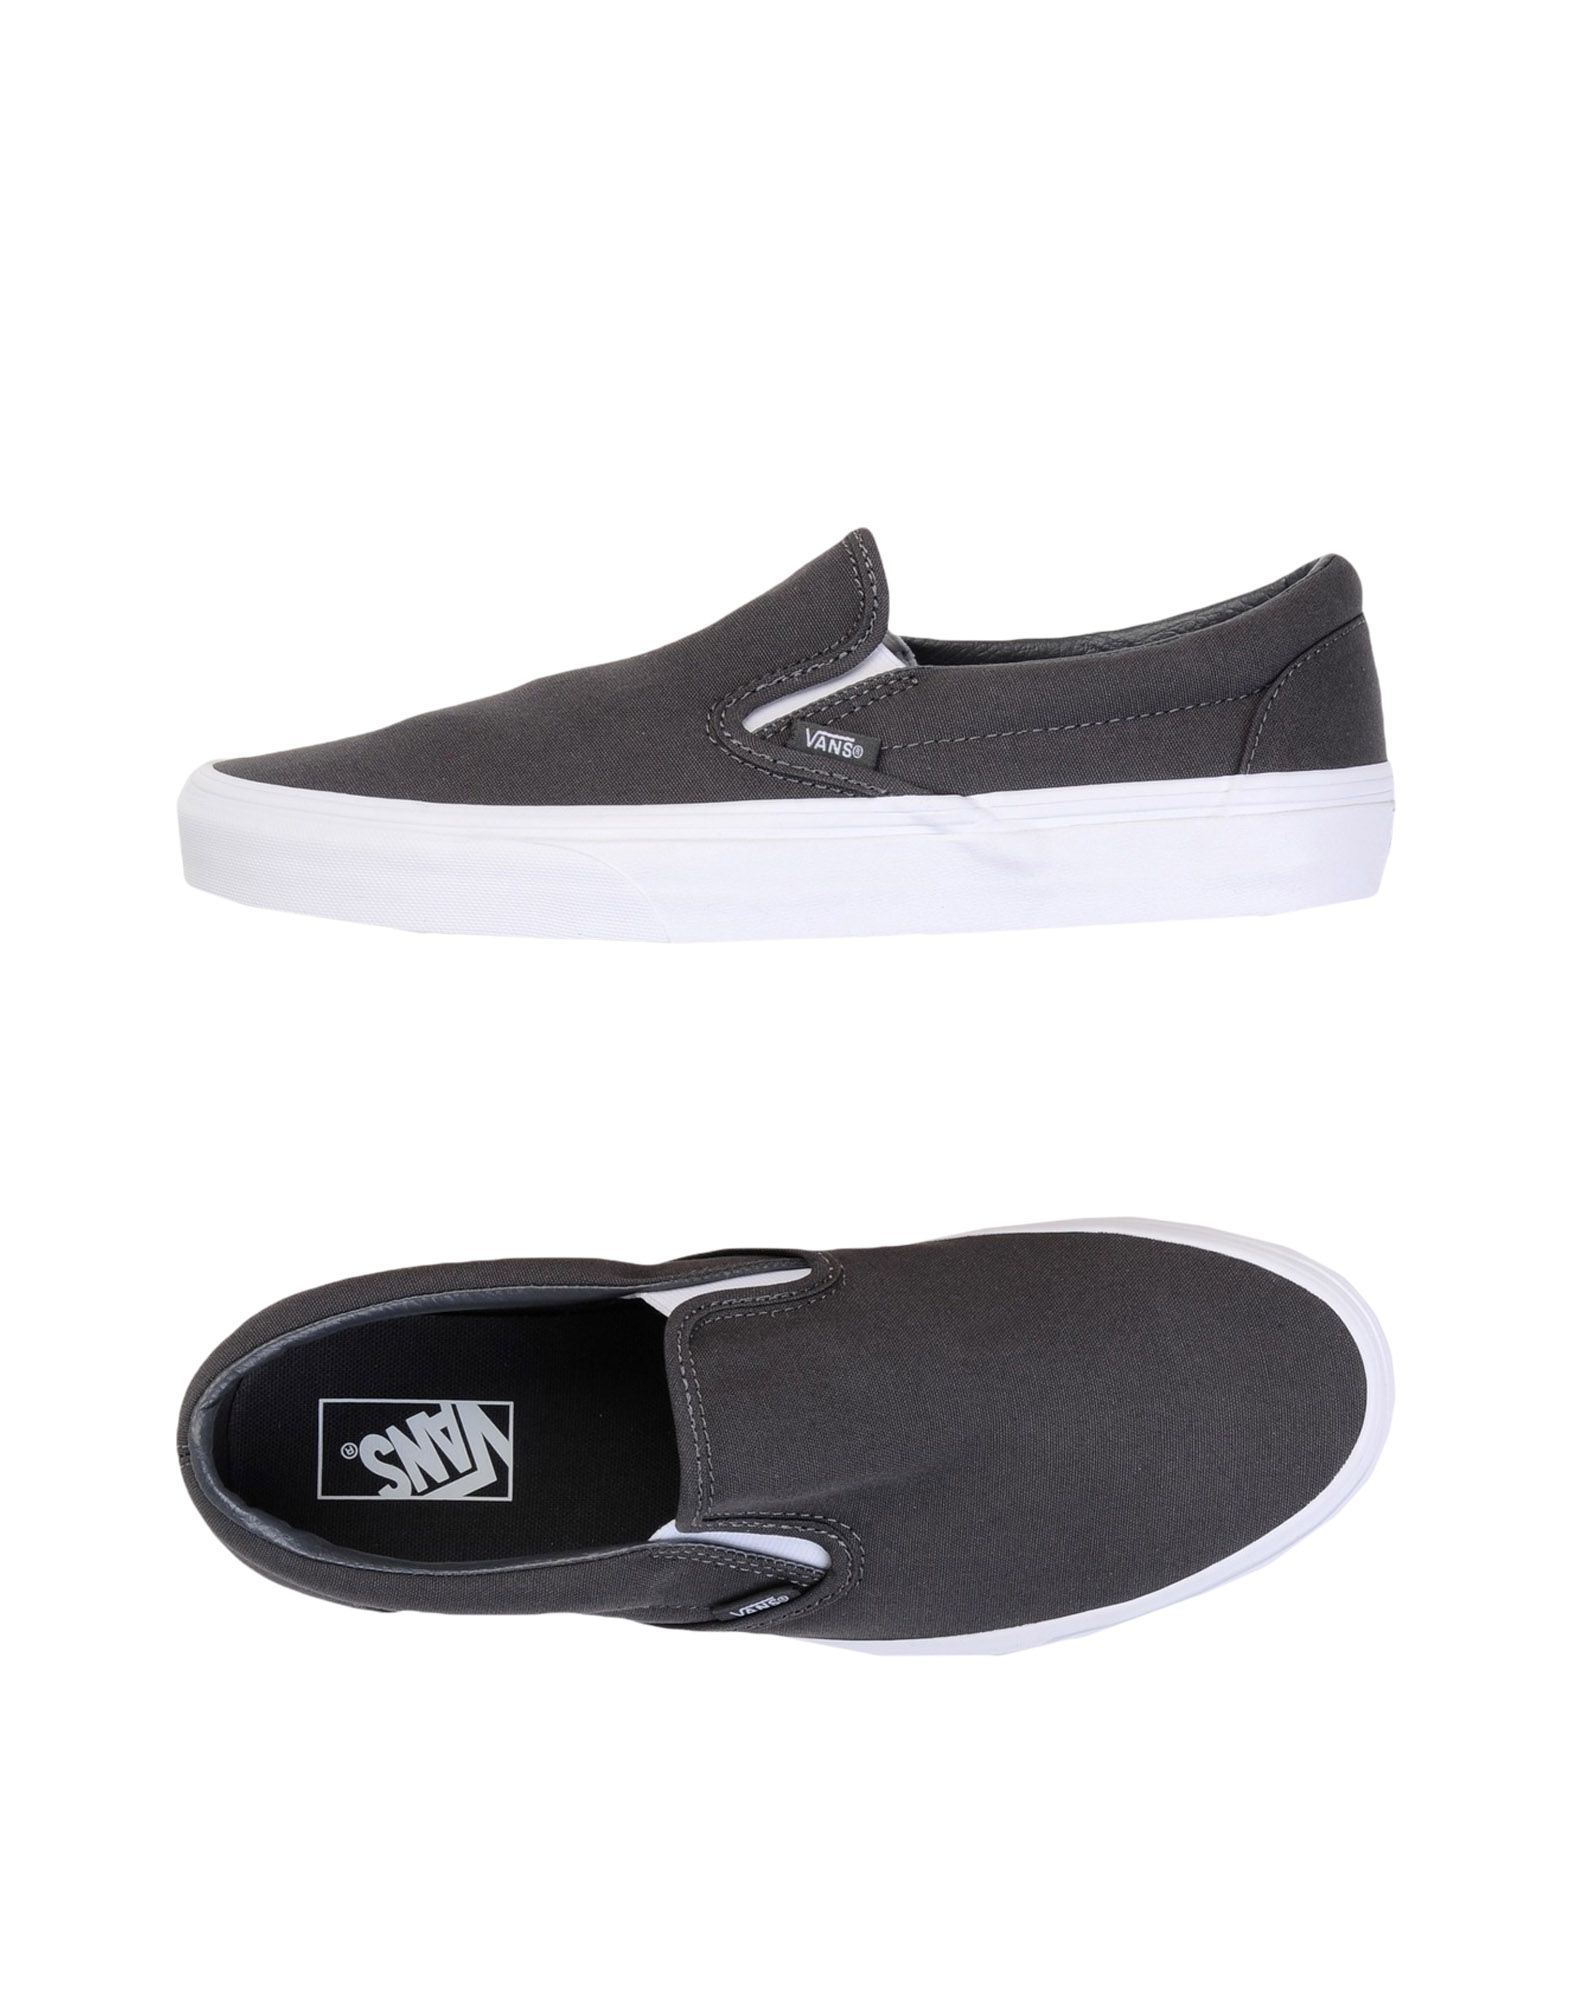 Vans Ua Classic Slip-On - Sneakers - Men Vans Sneakers - online on  Canada - Sneakers 11469847WW c100f5